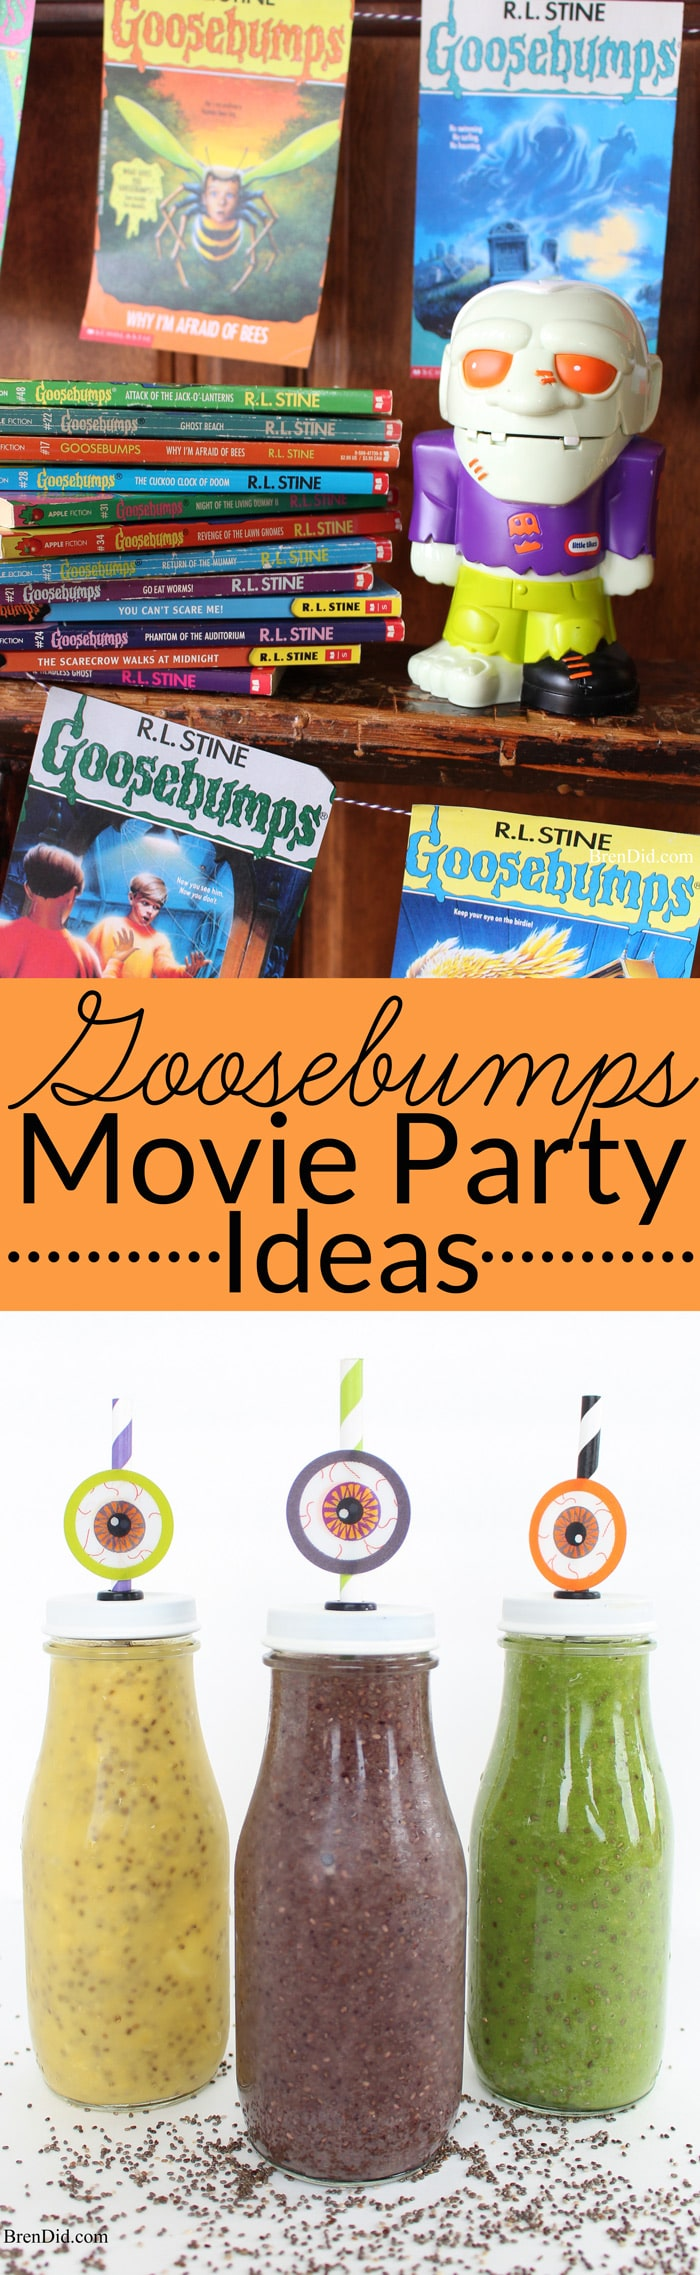 Do your kids love Goosebumps books? Host a family fun night featuring Goosebumps Movies or hold a Goosebumps party with this easy Goosebumps banner and creepy smoothie recipe. Kids parties, DIY, R.L. Stein